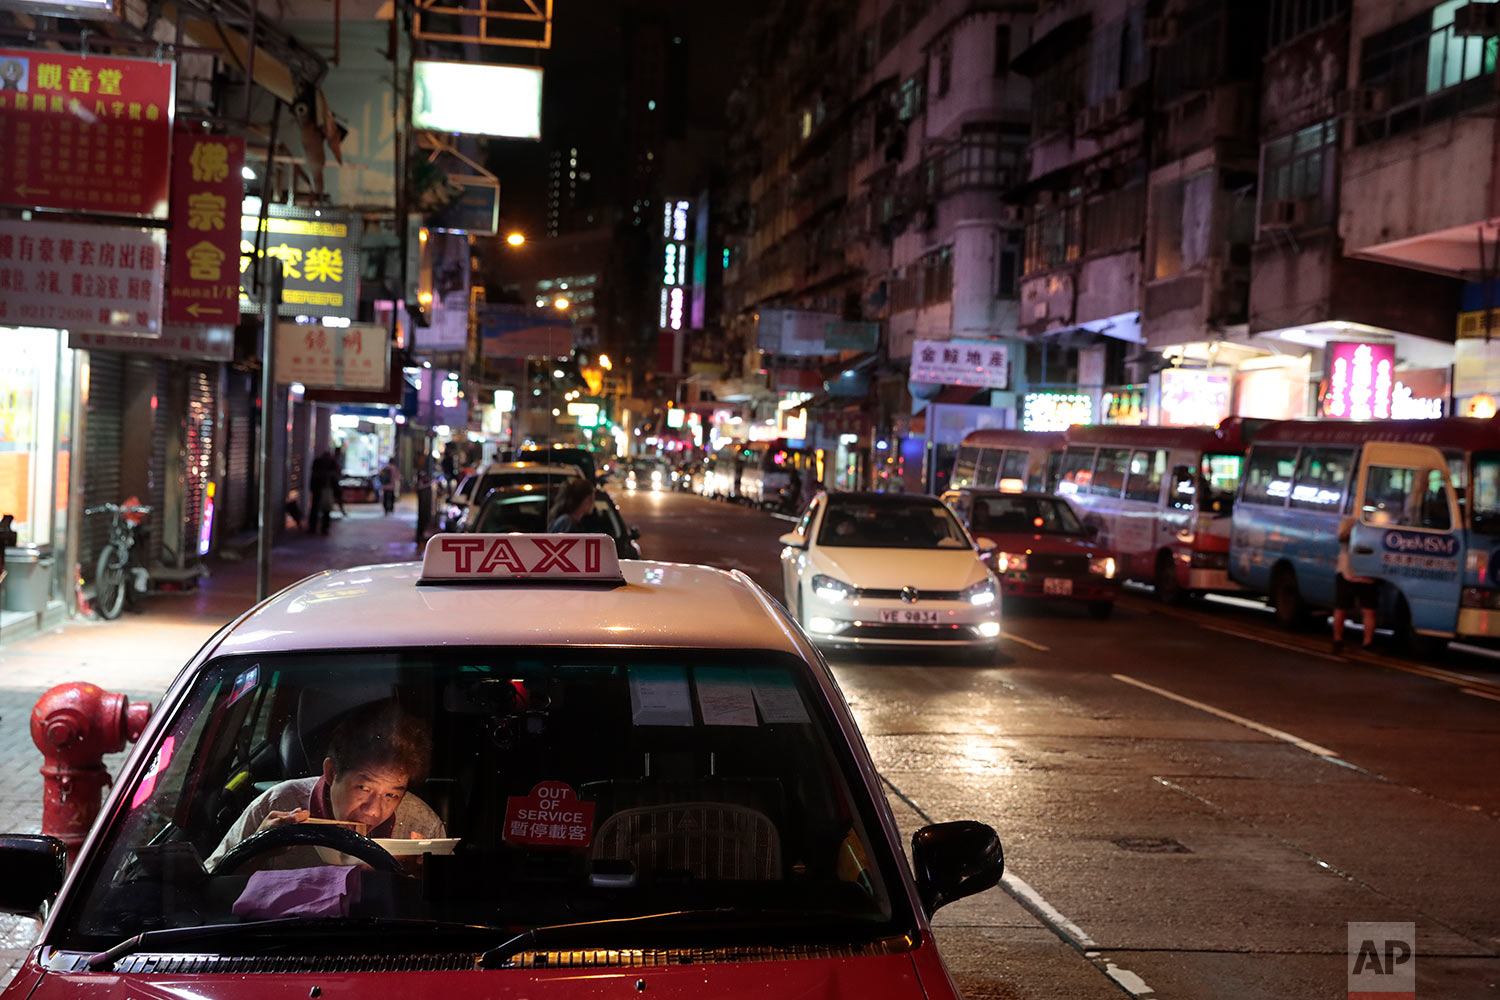 A taxi driver eats his late dinner in his car near the Temple Street Night Market in Hong Kong, Sept. 2, 2019. (AP Photo/Jae C. Hong)